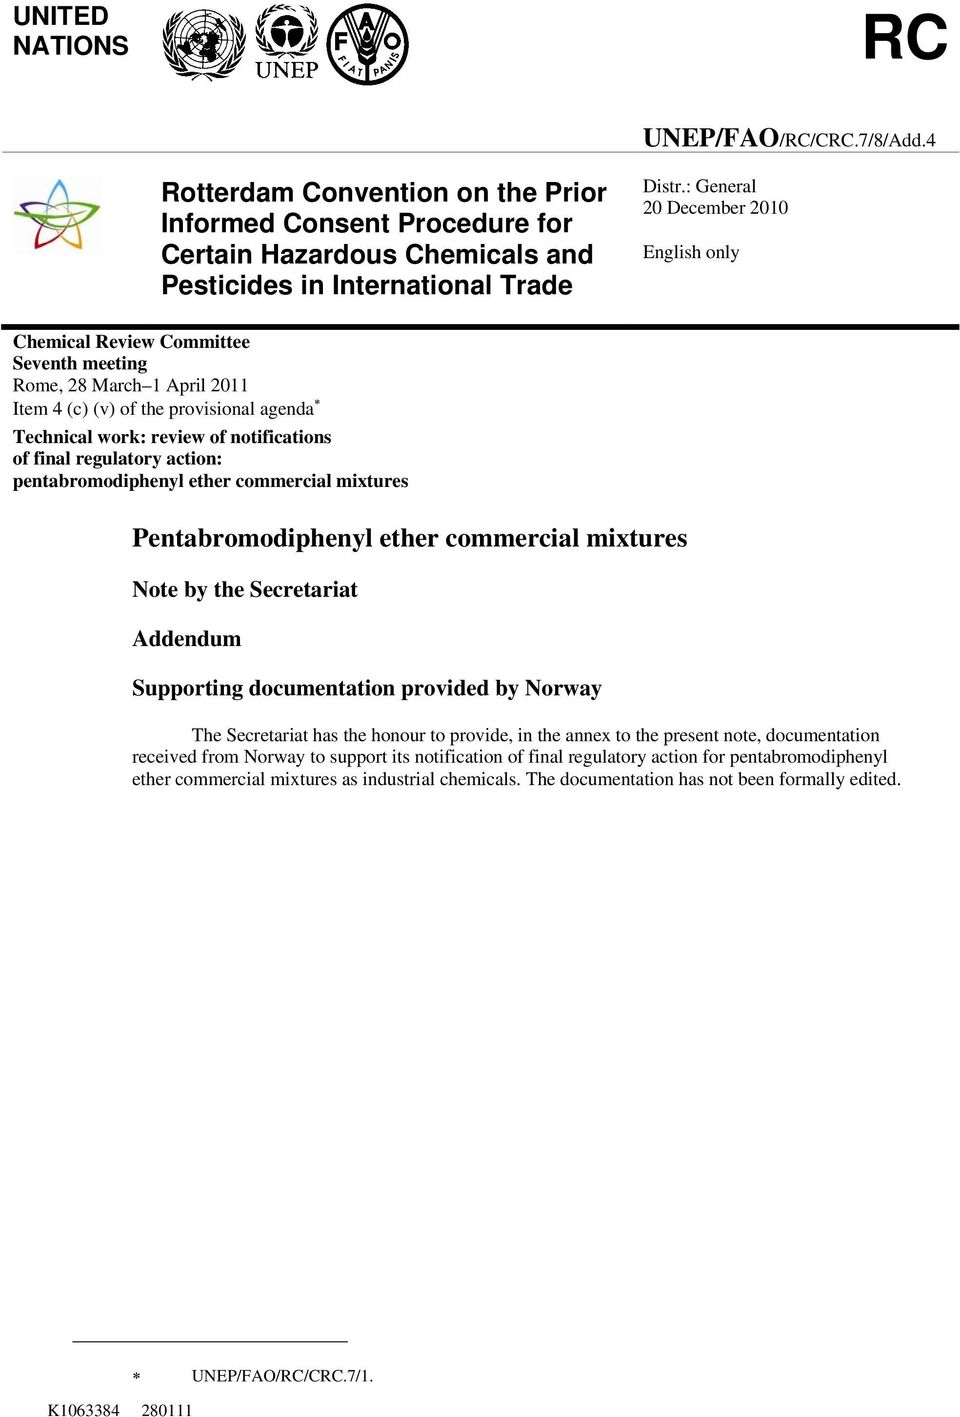 regulatory action: pentabromodiphenyl ether commercial mixtures Pentabromodiphenyl ether commercial mixtures Note by the Secretariat Addendum Supporting documentation provided by Norway The